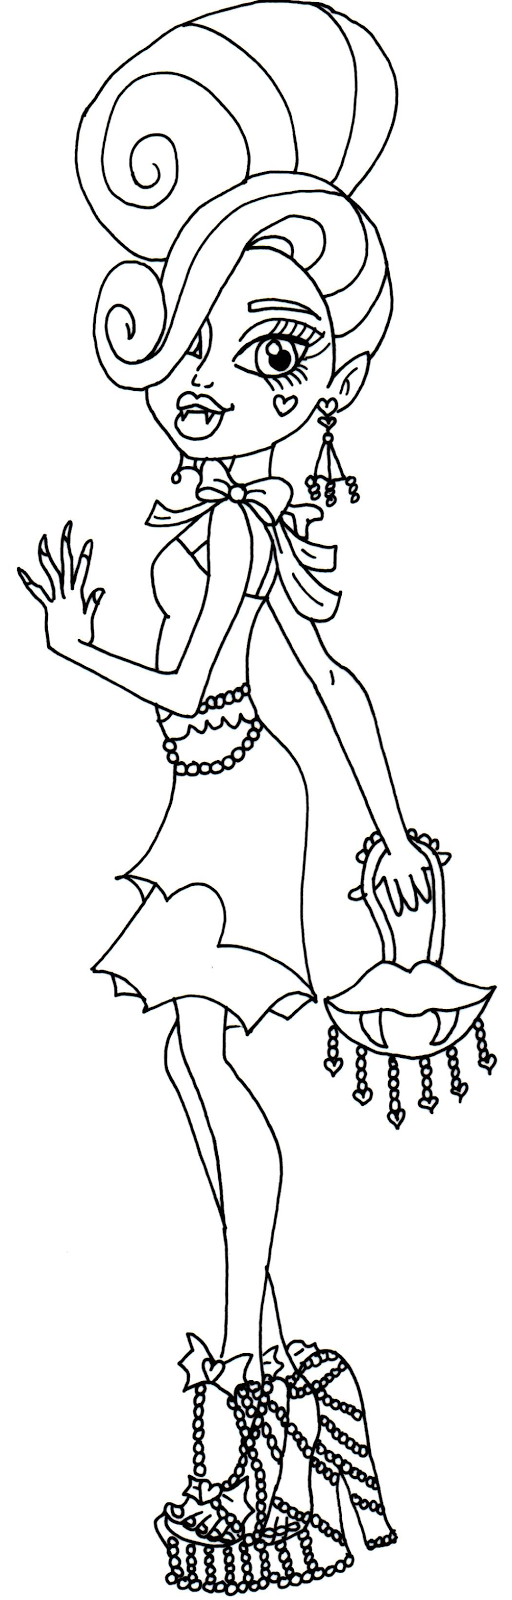 free printable monster high coloring pages draculaura black